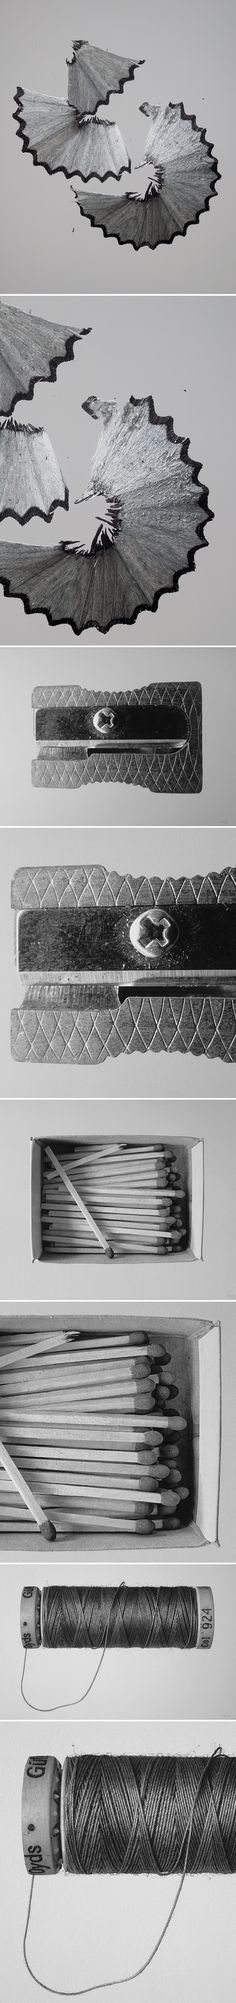 Lovely black and white photographs of mundane objects… NOPE! Large-scale, mixed media DRAWINGS of mundane objects! What?! This is the pencil & acrylic work of Spanish artist Rómulo Celdrán. Some of these pieces are up to 69″ wide… like those pencil shavings. Oh, those pencil shavings. I cannot even imagine being able to draw like that. Love.